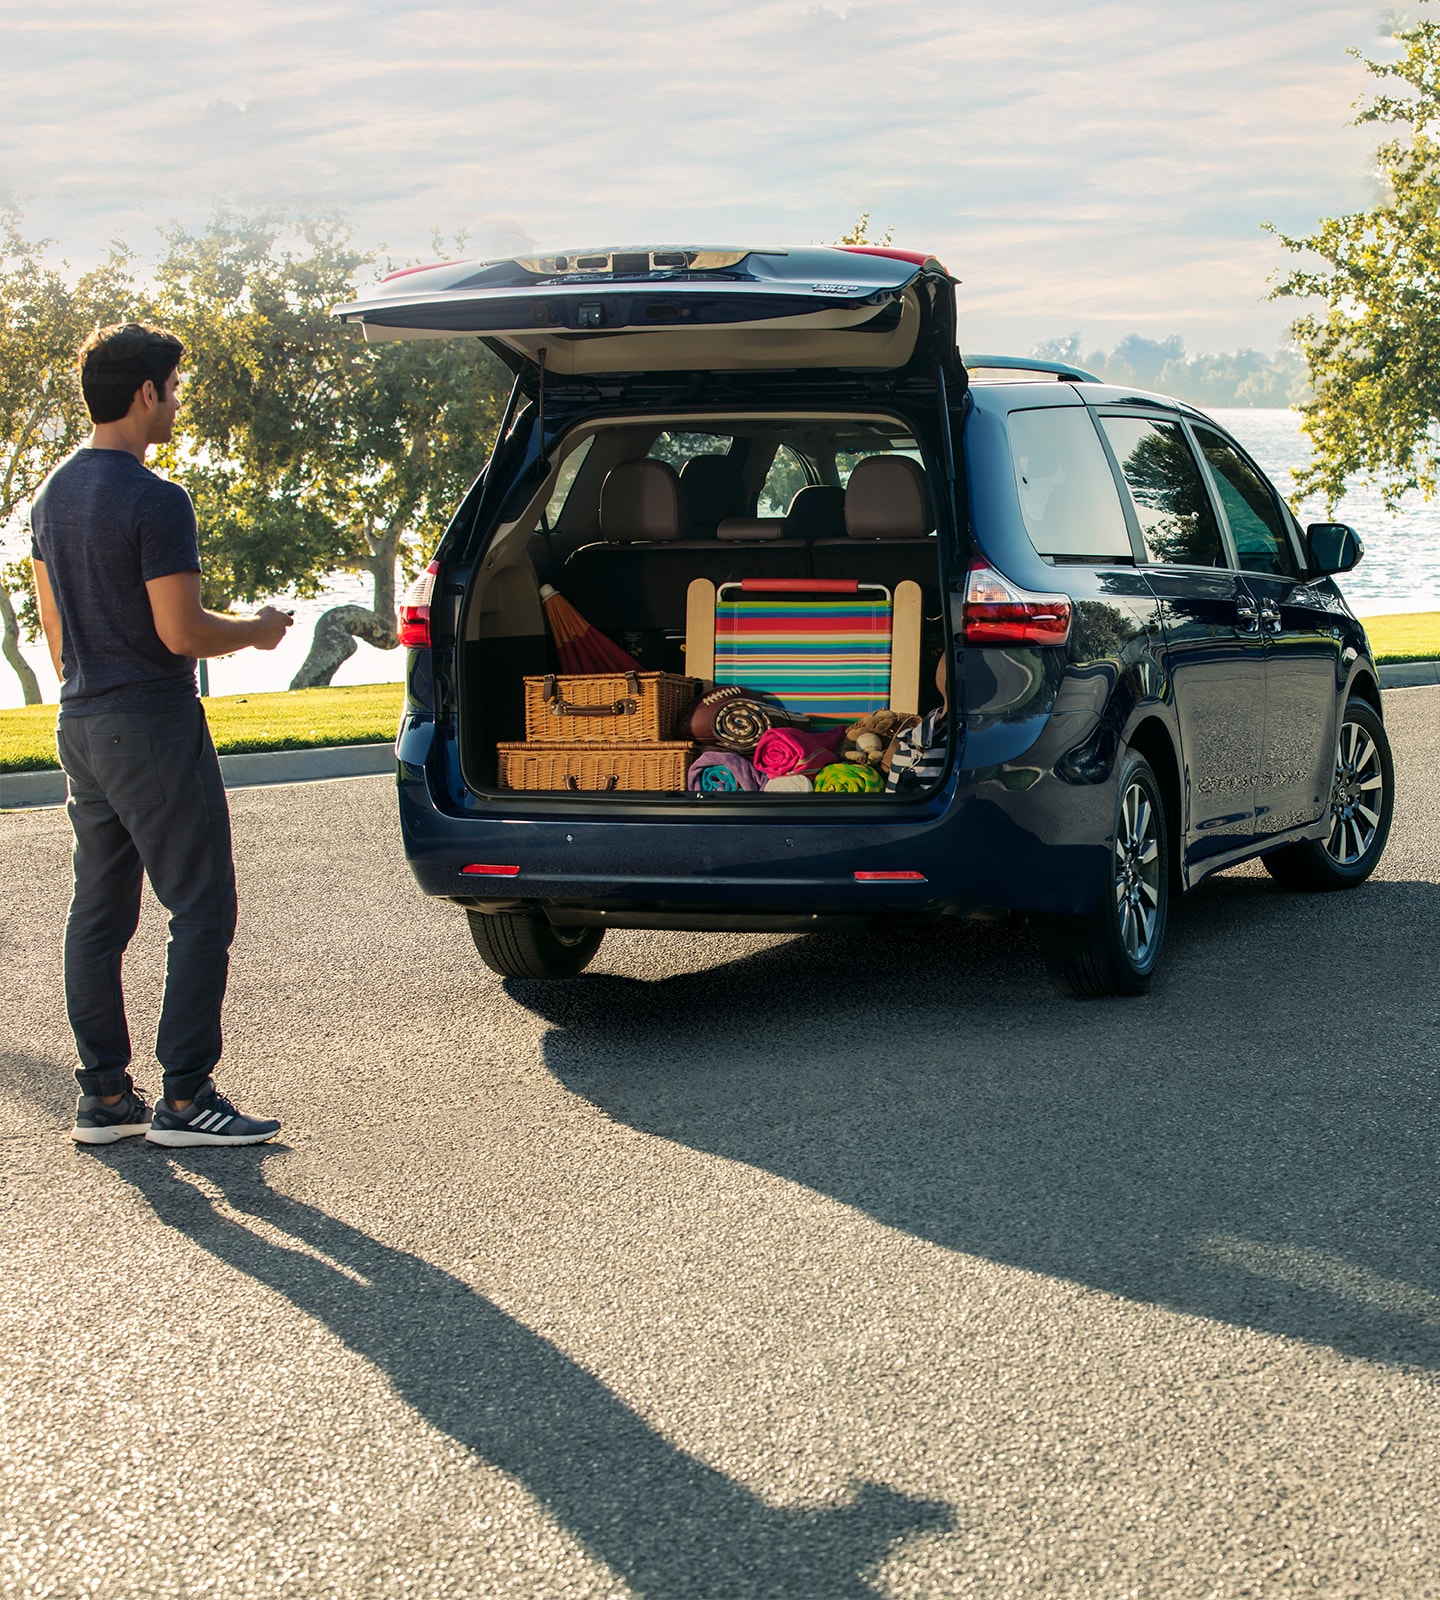 Cargo loaded into trunk of Toyota Sienna